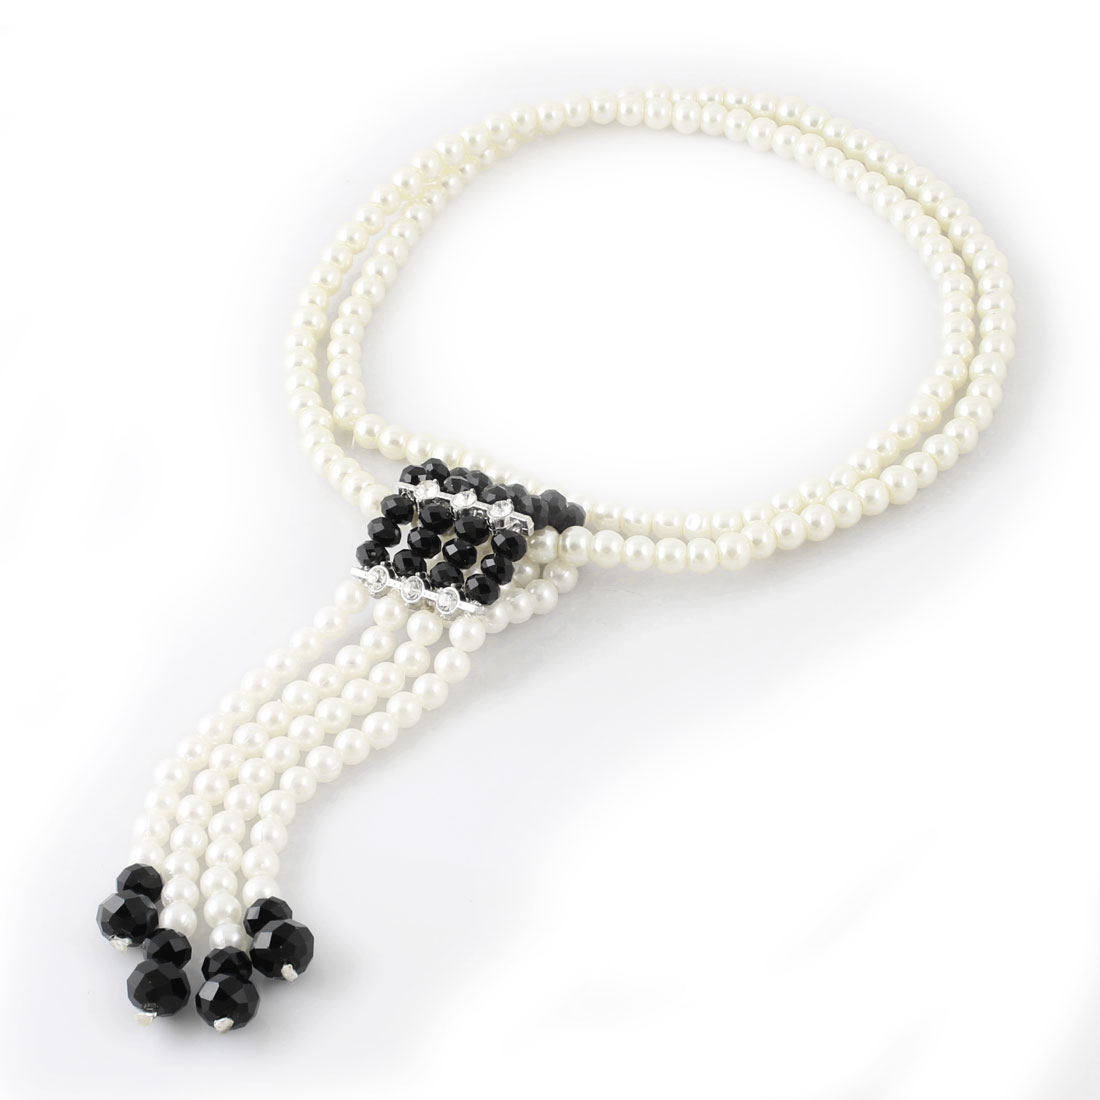 Plastic Crystal Accent Beads Pendant Sweater Necklace Black White for Woman